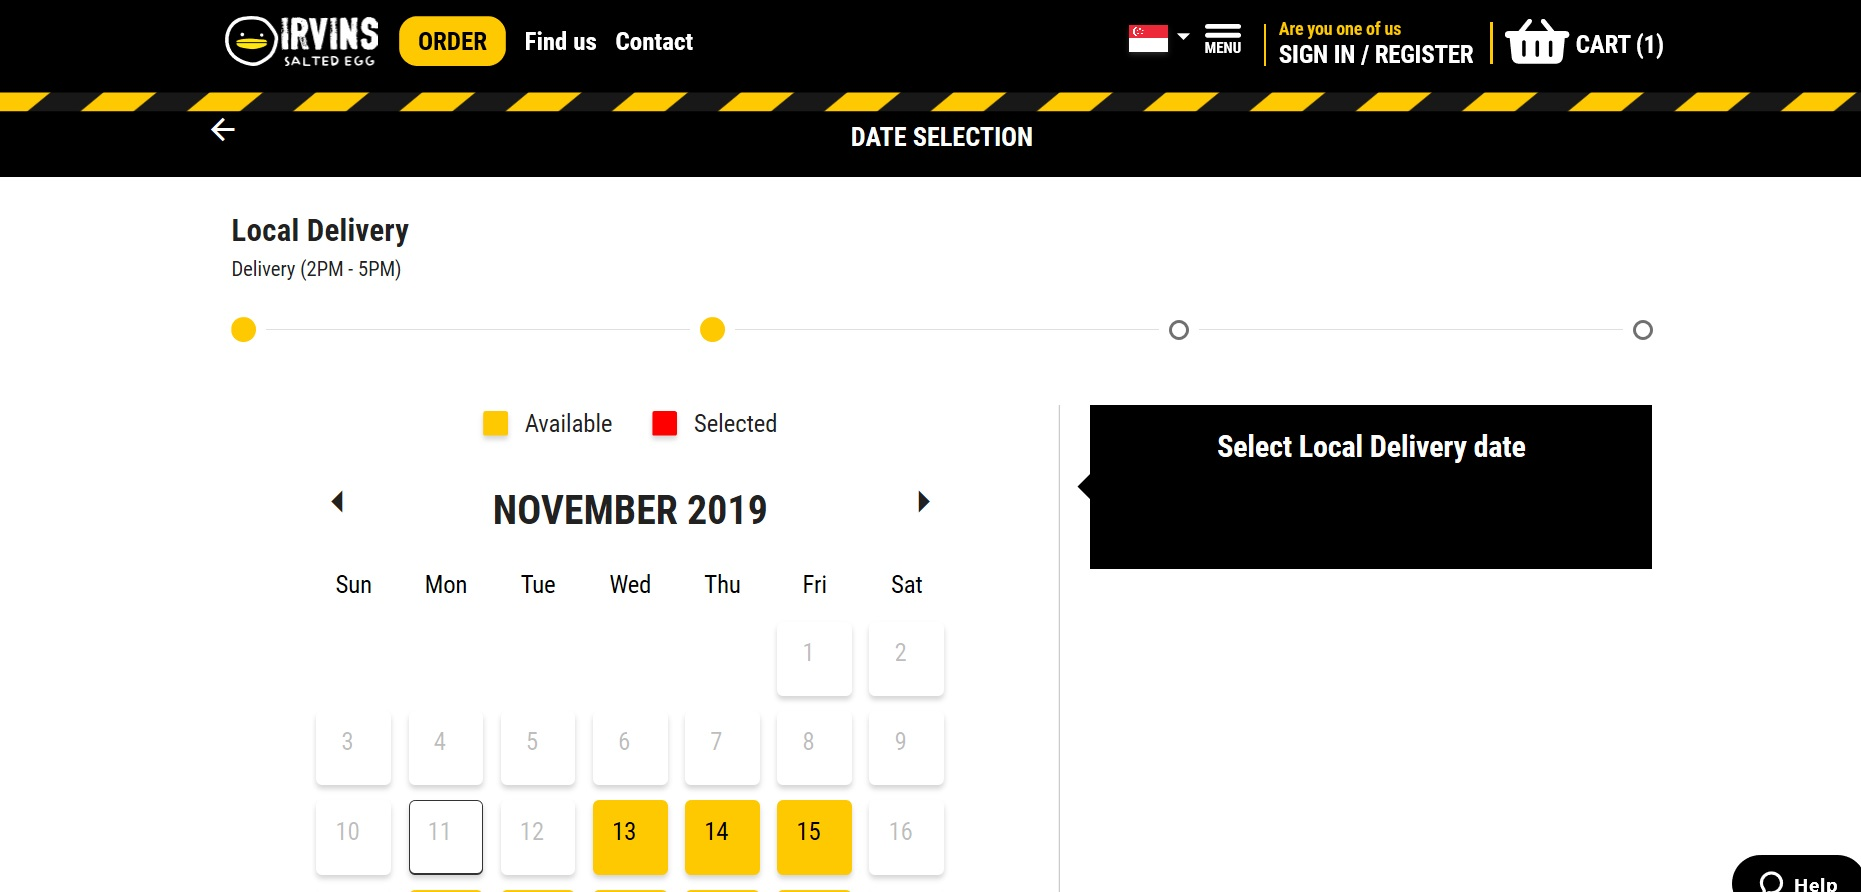 Section to choose local delivery date.